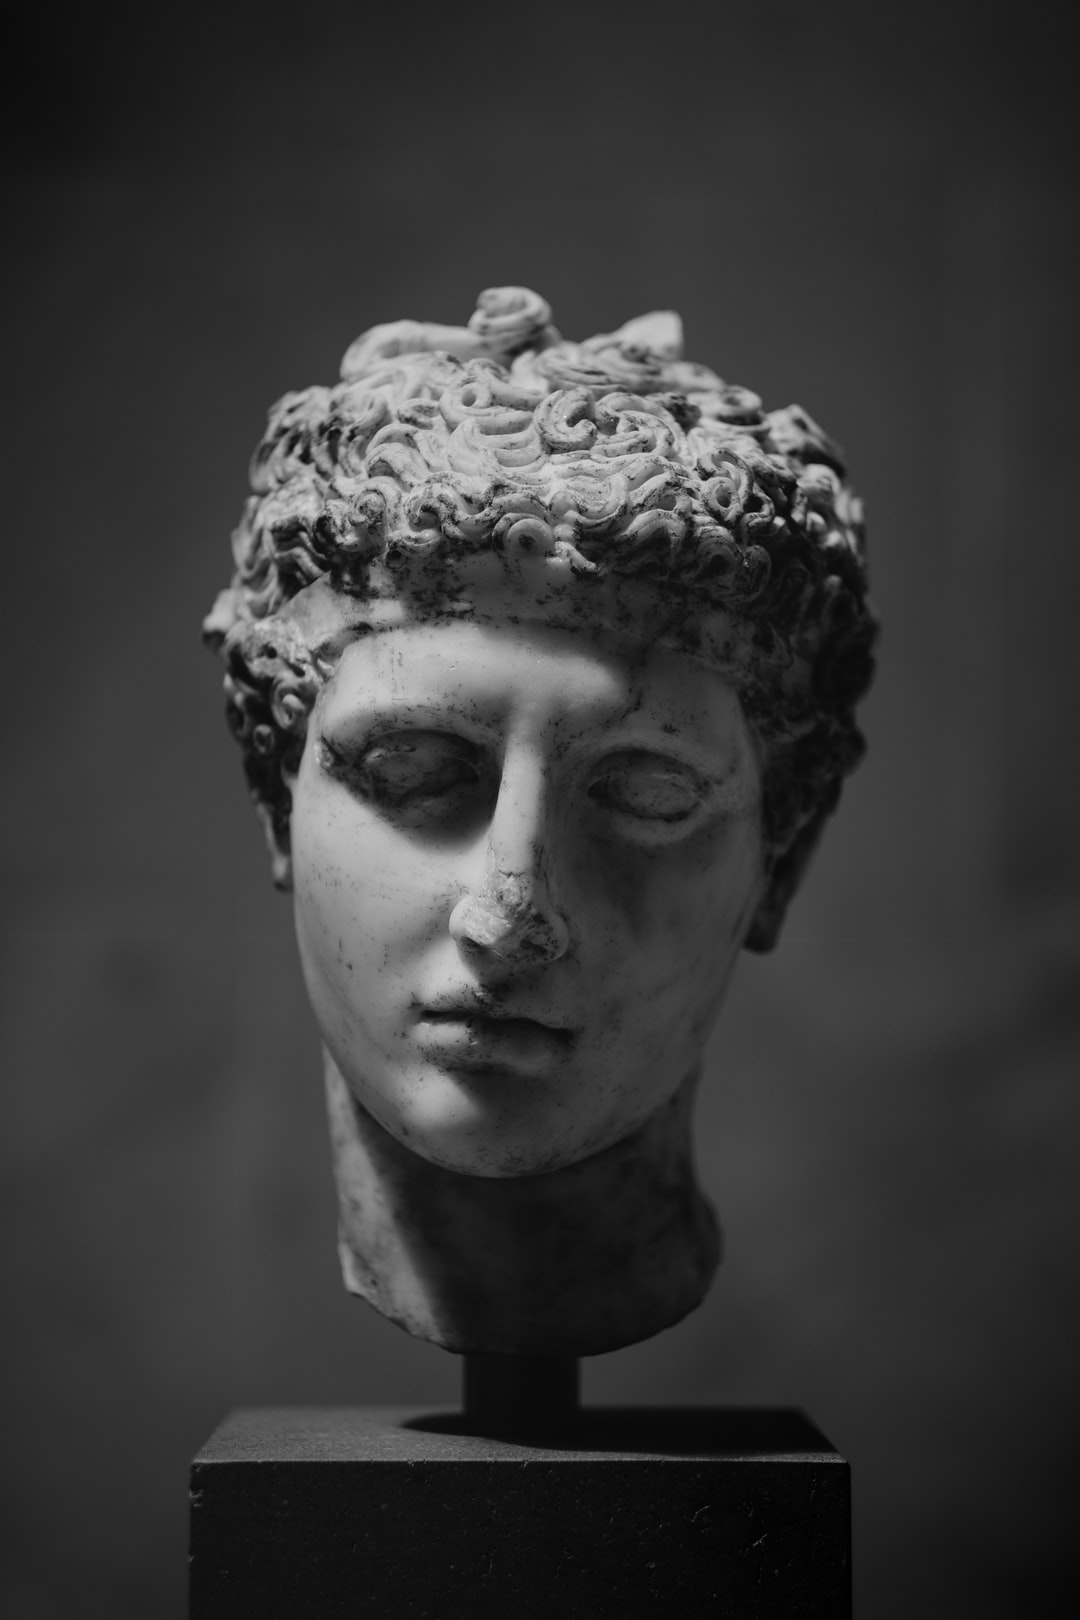 Marble head of an athlete. Roman, 2nd century CE, at the Metropolitan Museum of Art.